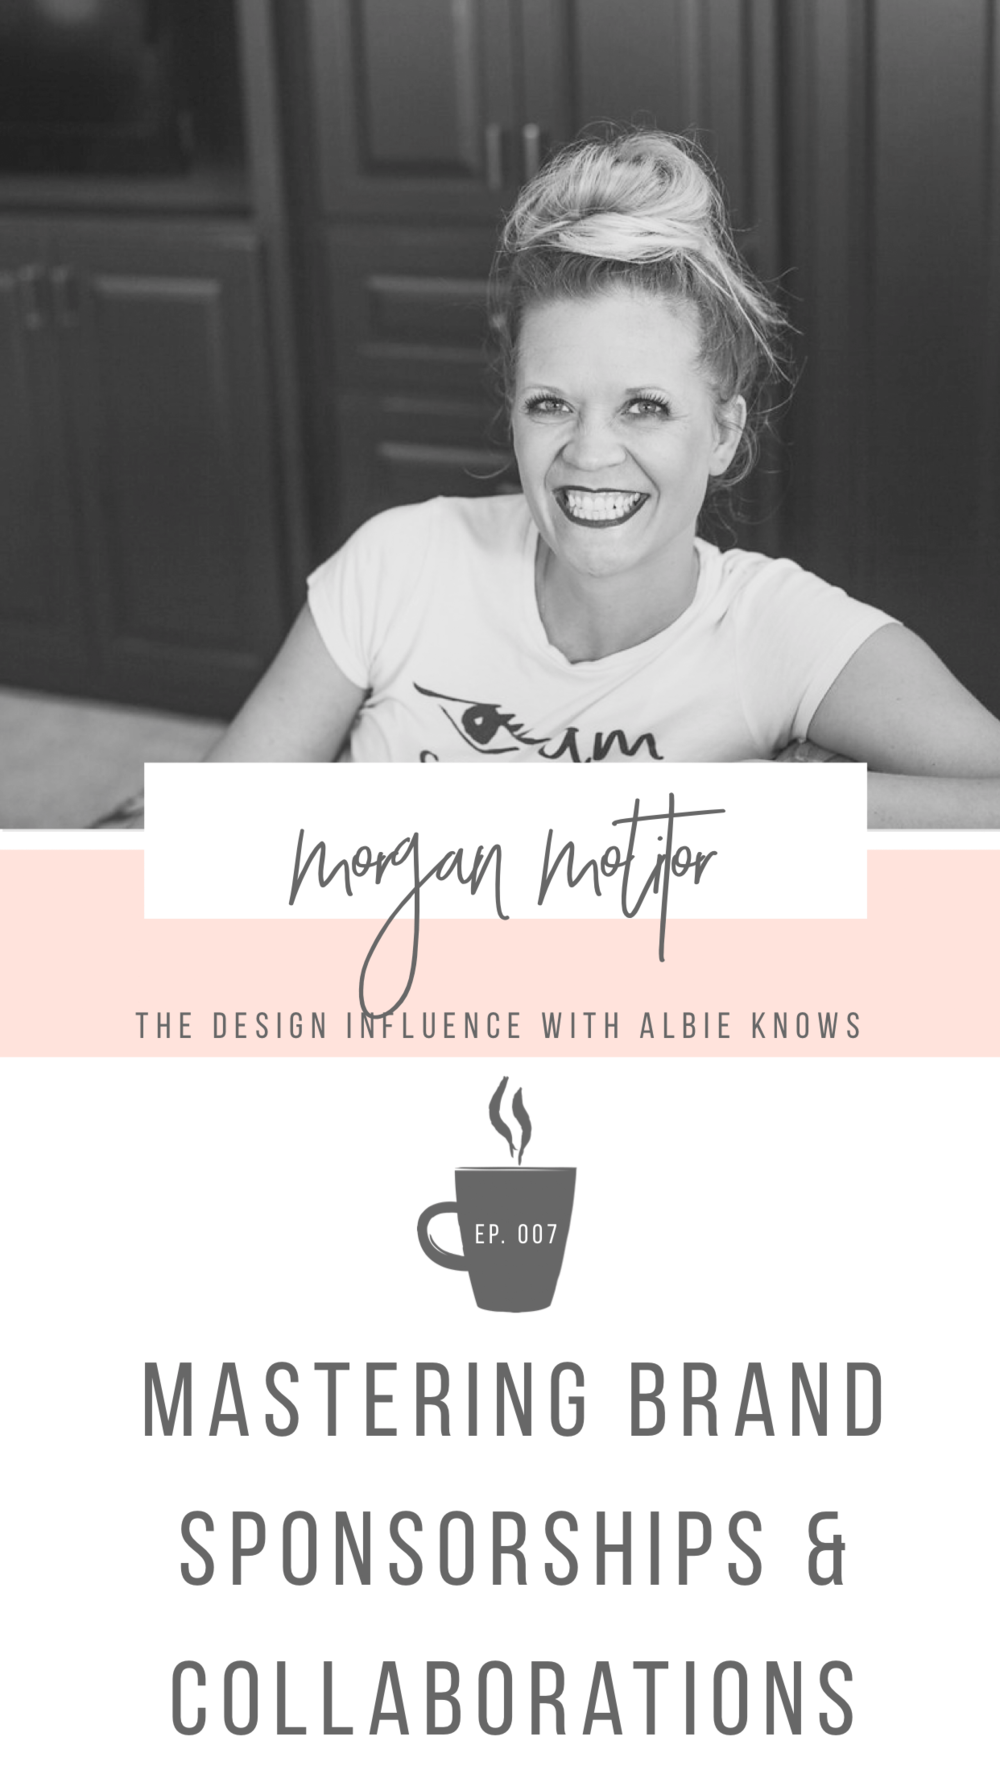 Episode 007: Mastering Brand Sponsorships & Collaborations with Morgan Molitor 2.png